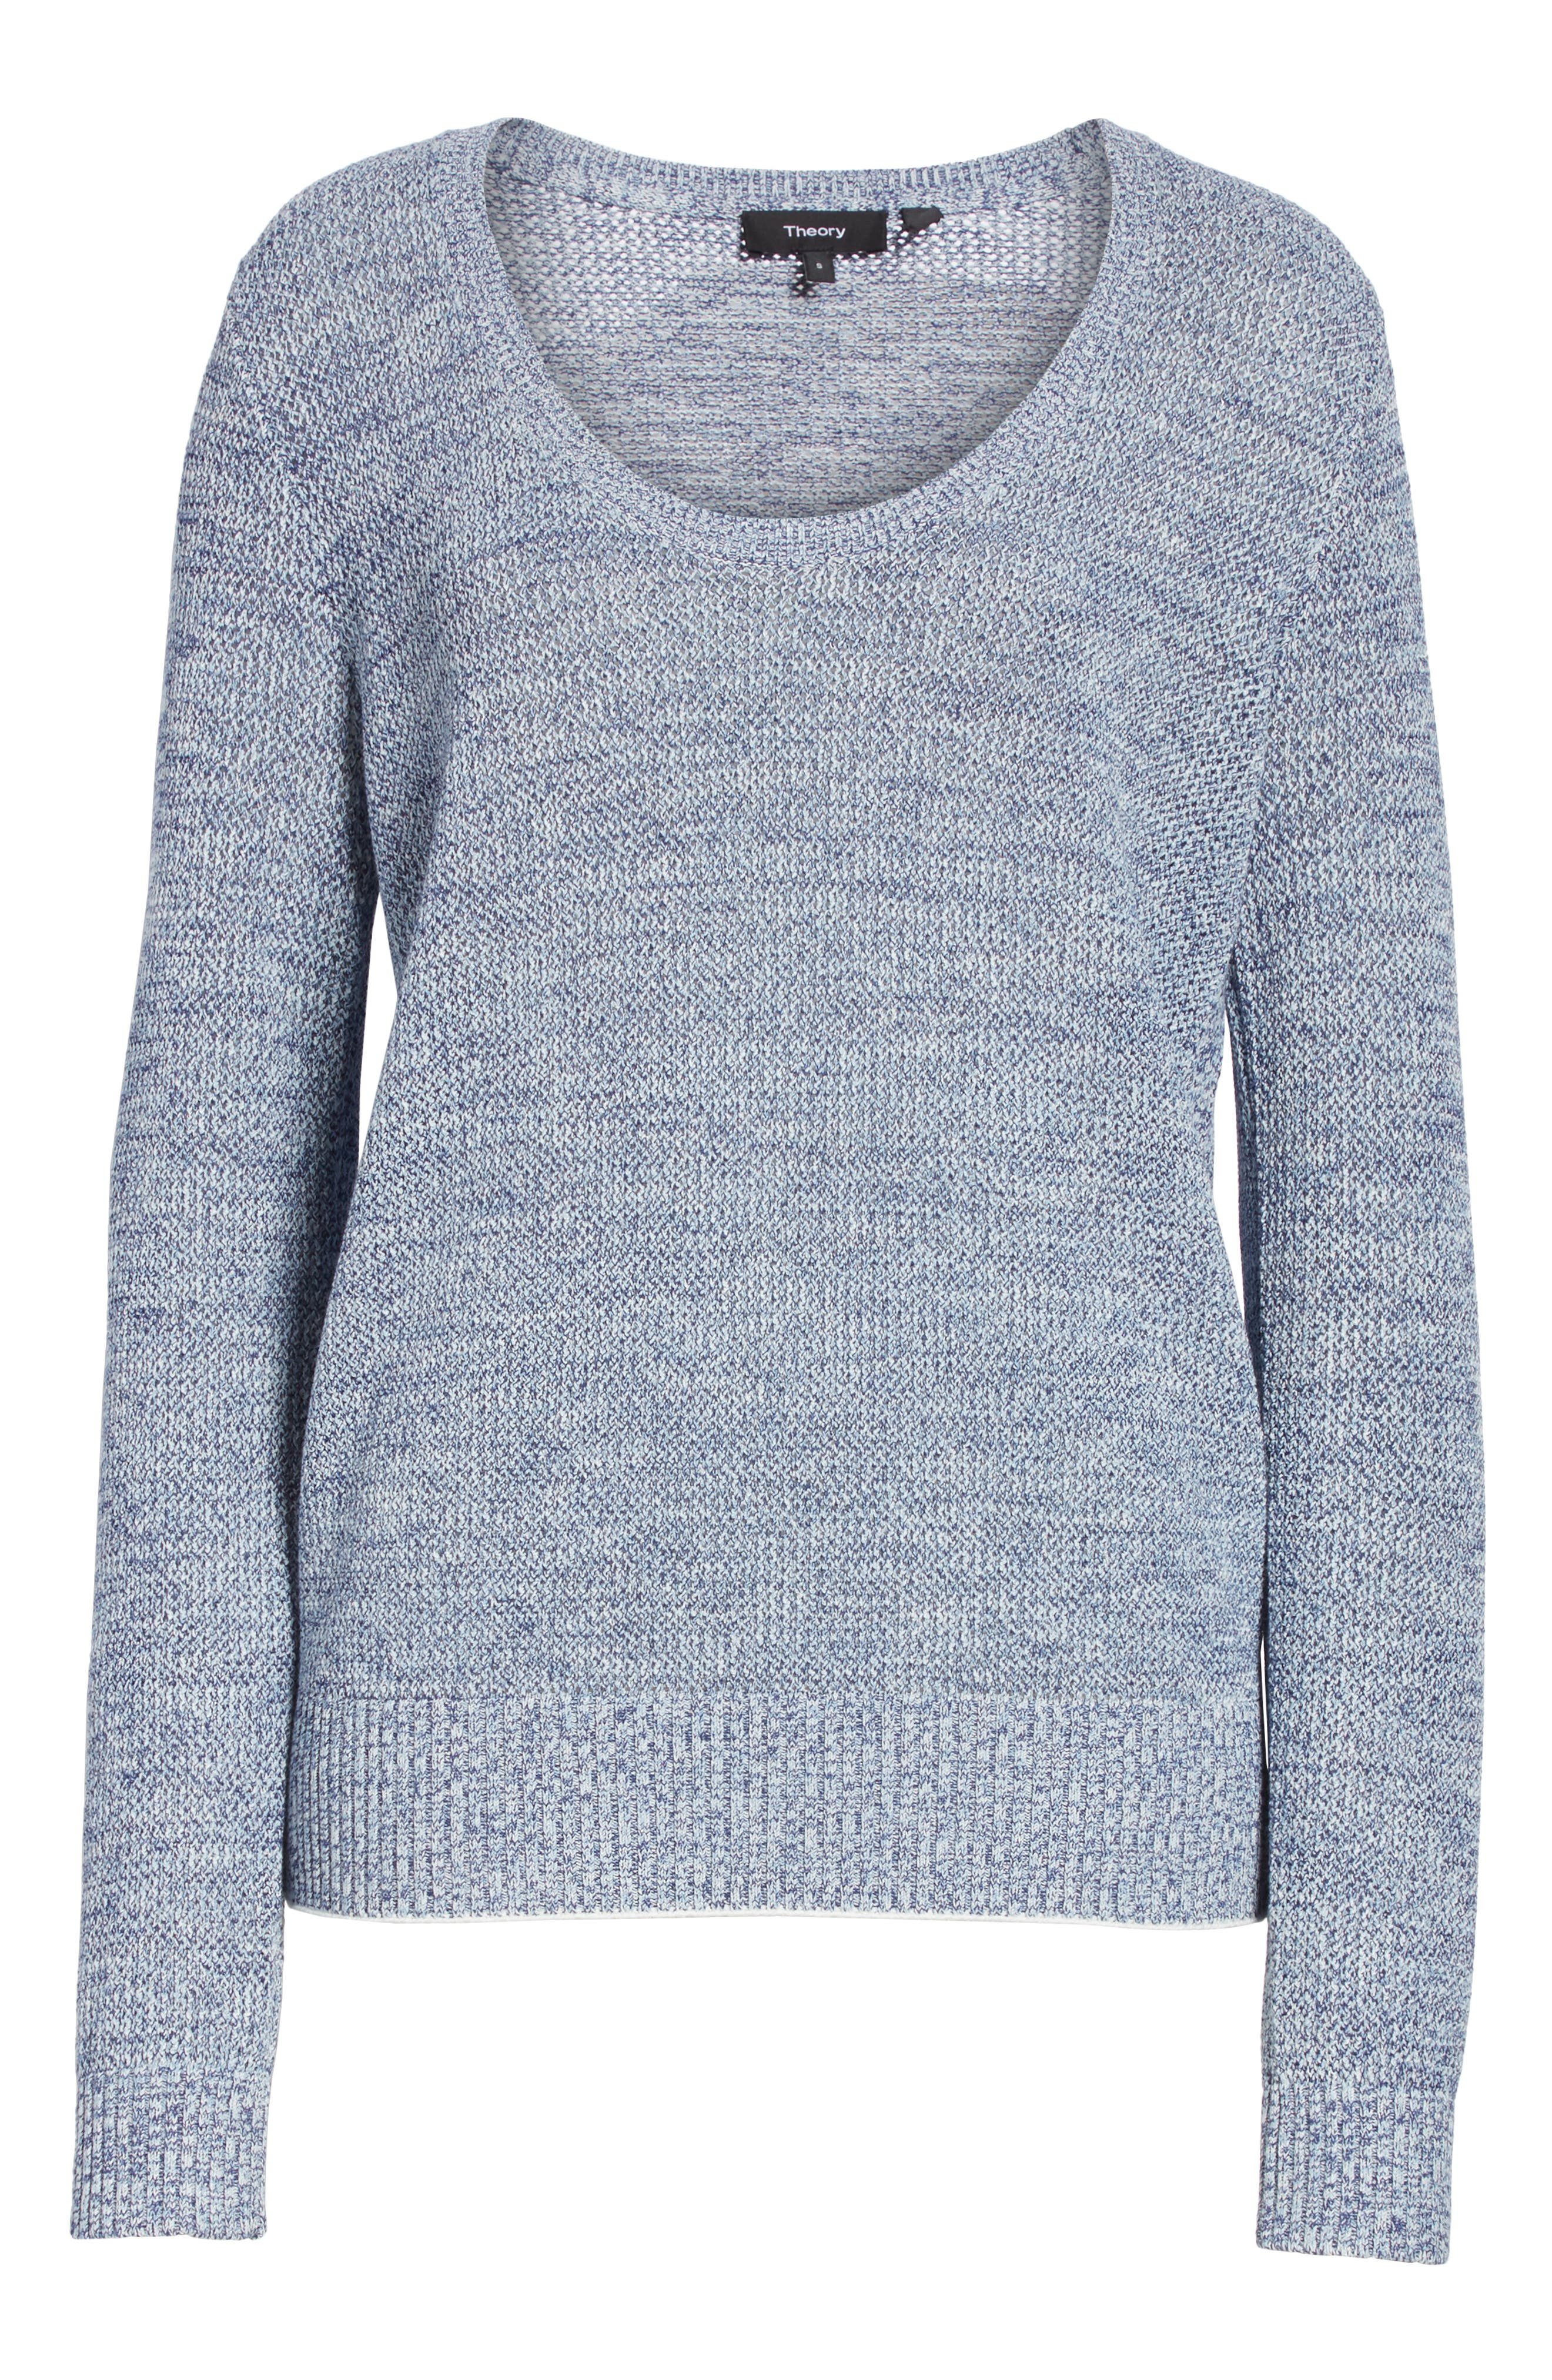 Prosecco Marled Sweater,                             Alternate thumbnail 6, color,                             404